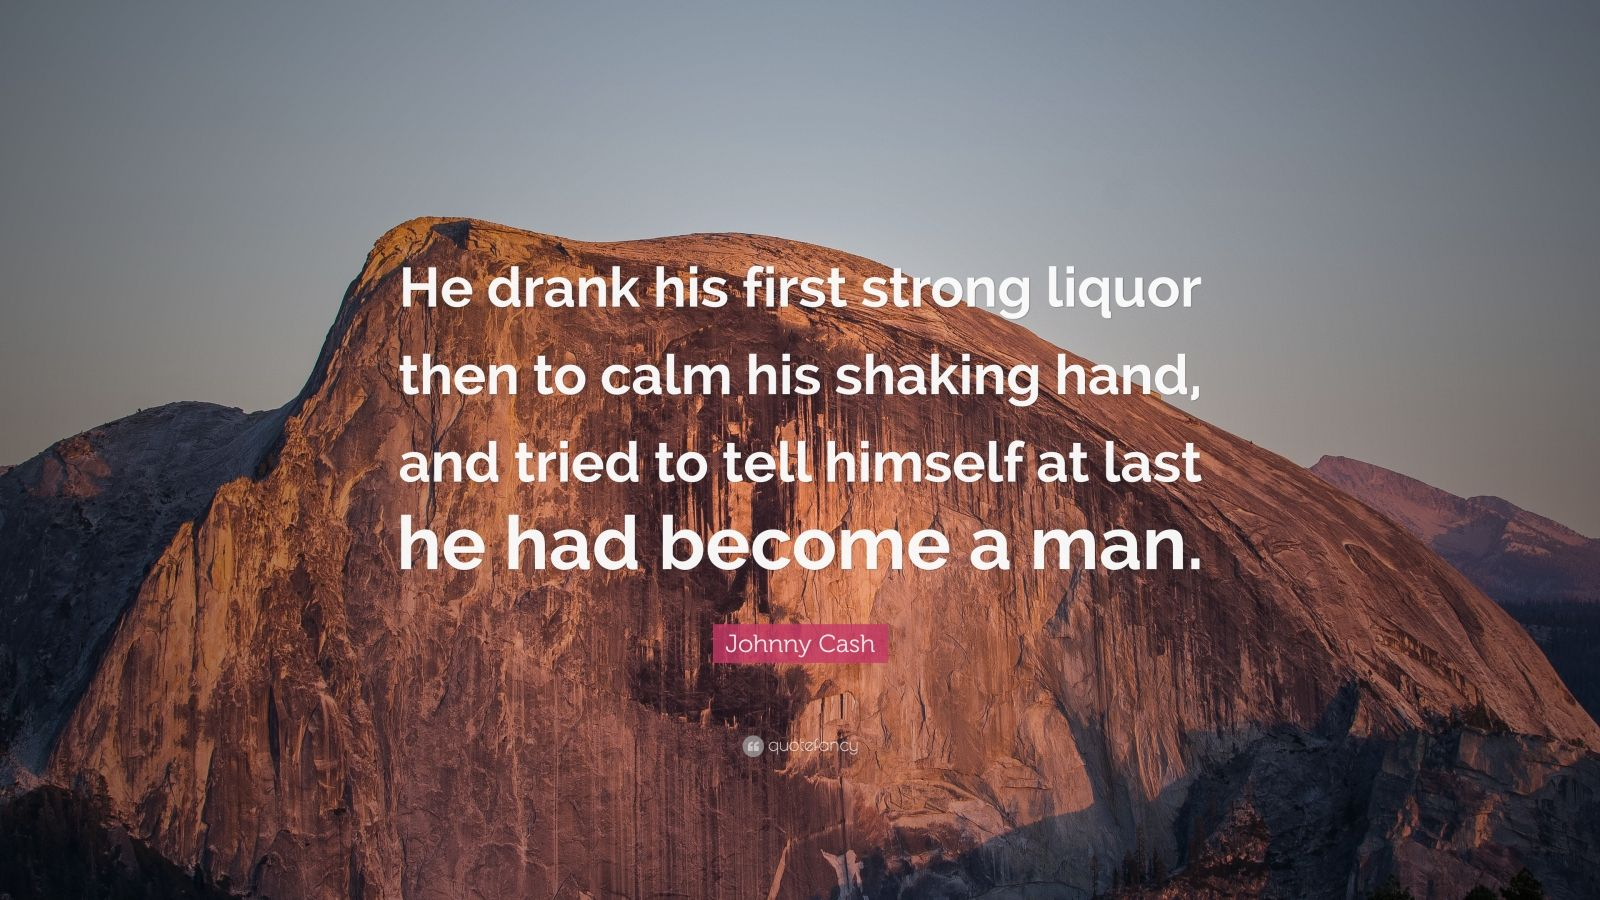 """Johnny Cash Quote: """"He drank his first strong liquor then to calm his shaking hand, and tried to tell himself at last he had become a man."""""""